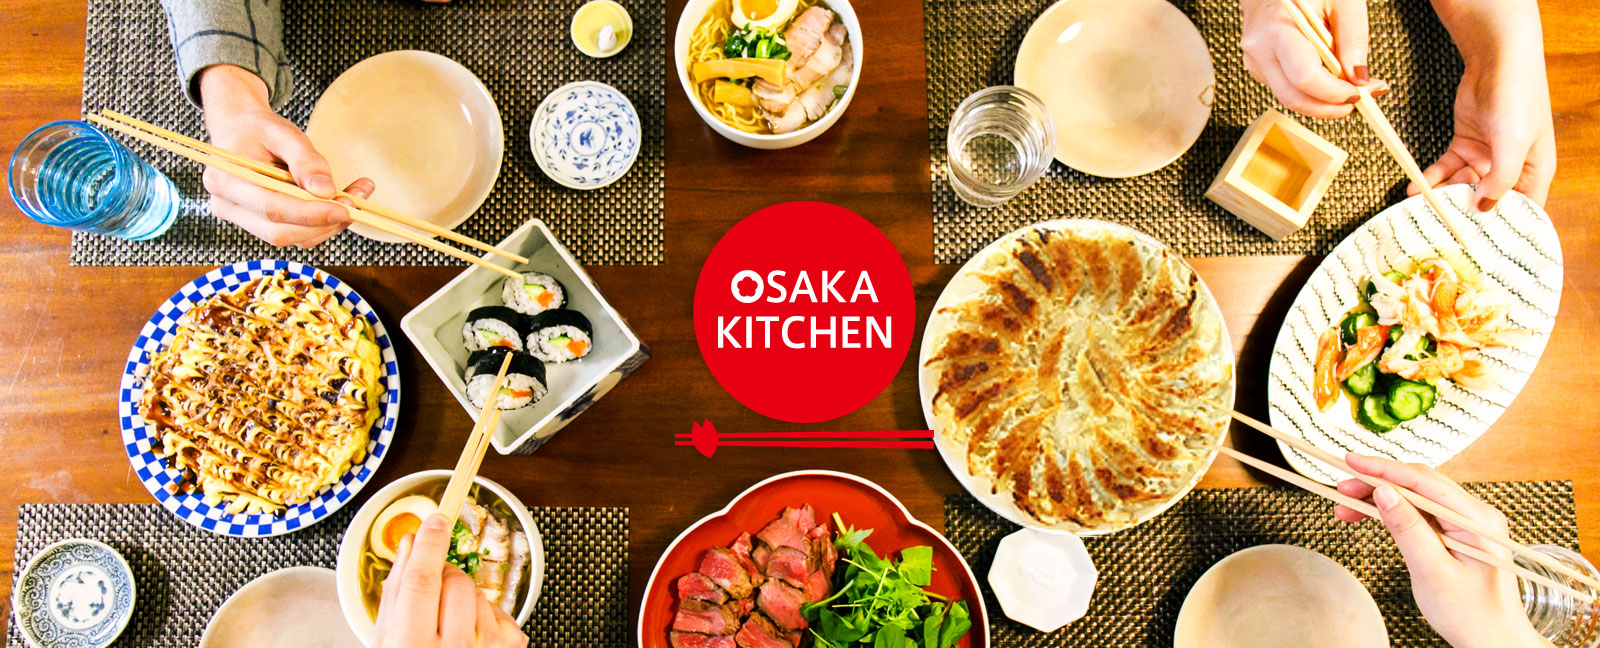 OSAKA KITCHEN